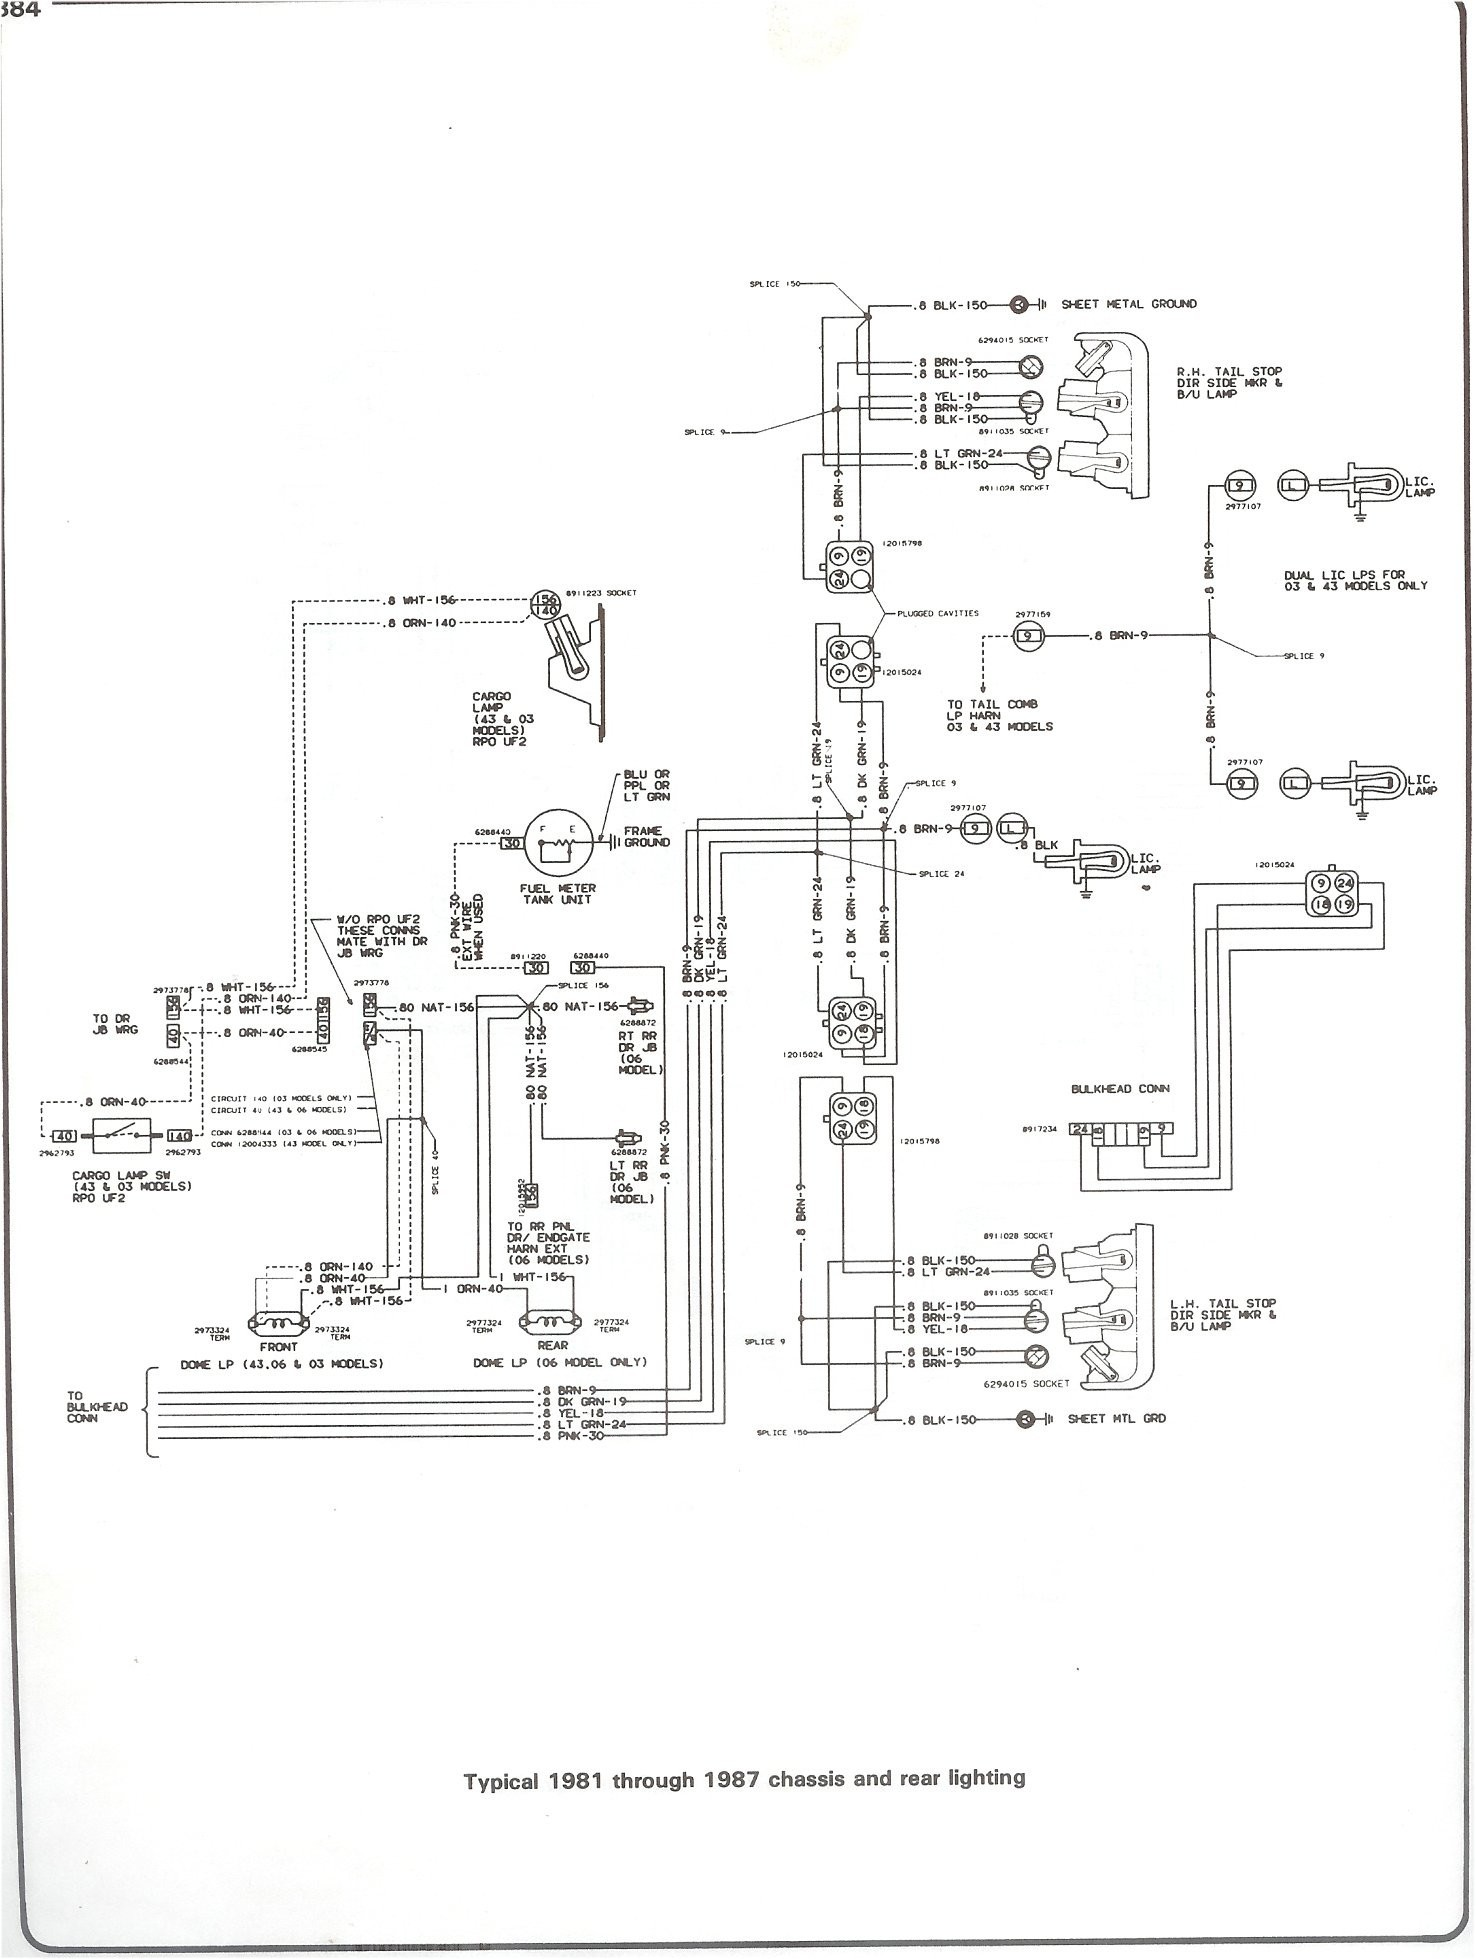 Wiring Diagram For 1977 Chevy Pickup Truck Auto Electrical Of 1987 Porsche 911 Engine Related With